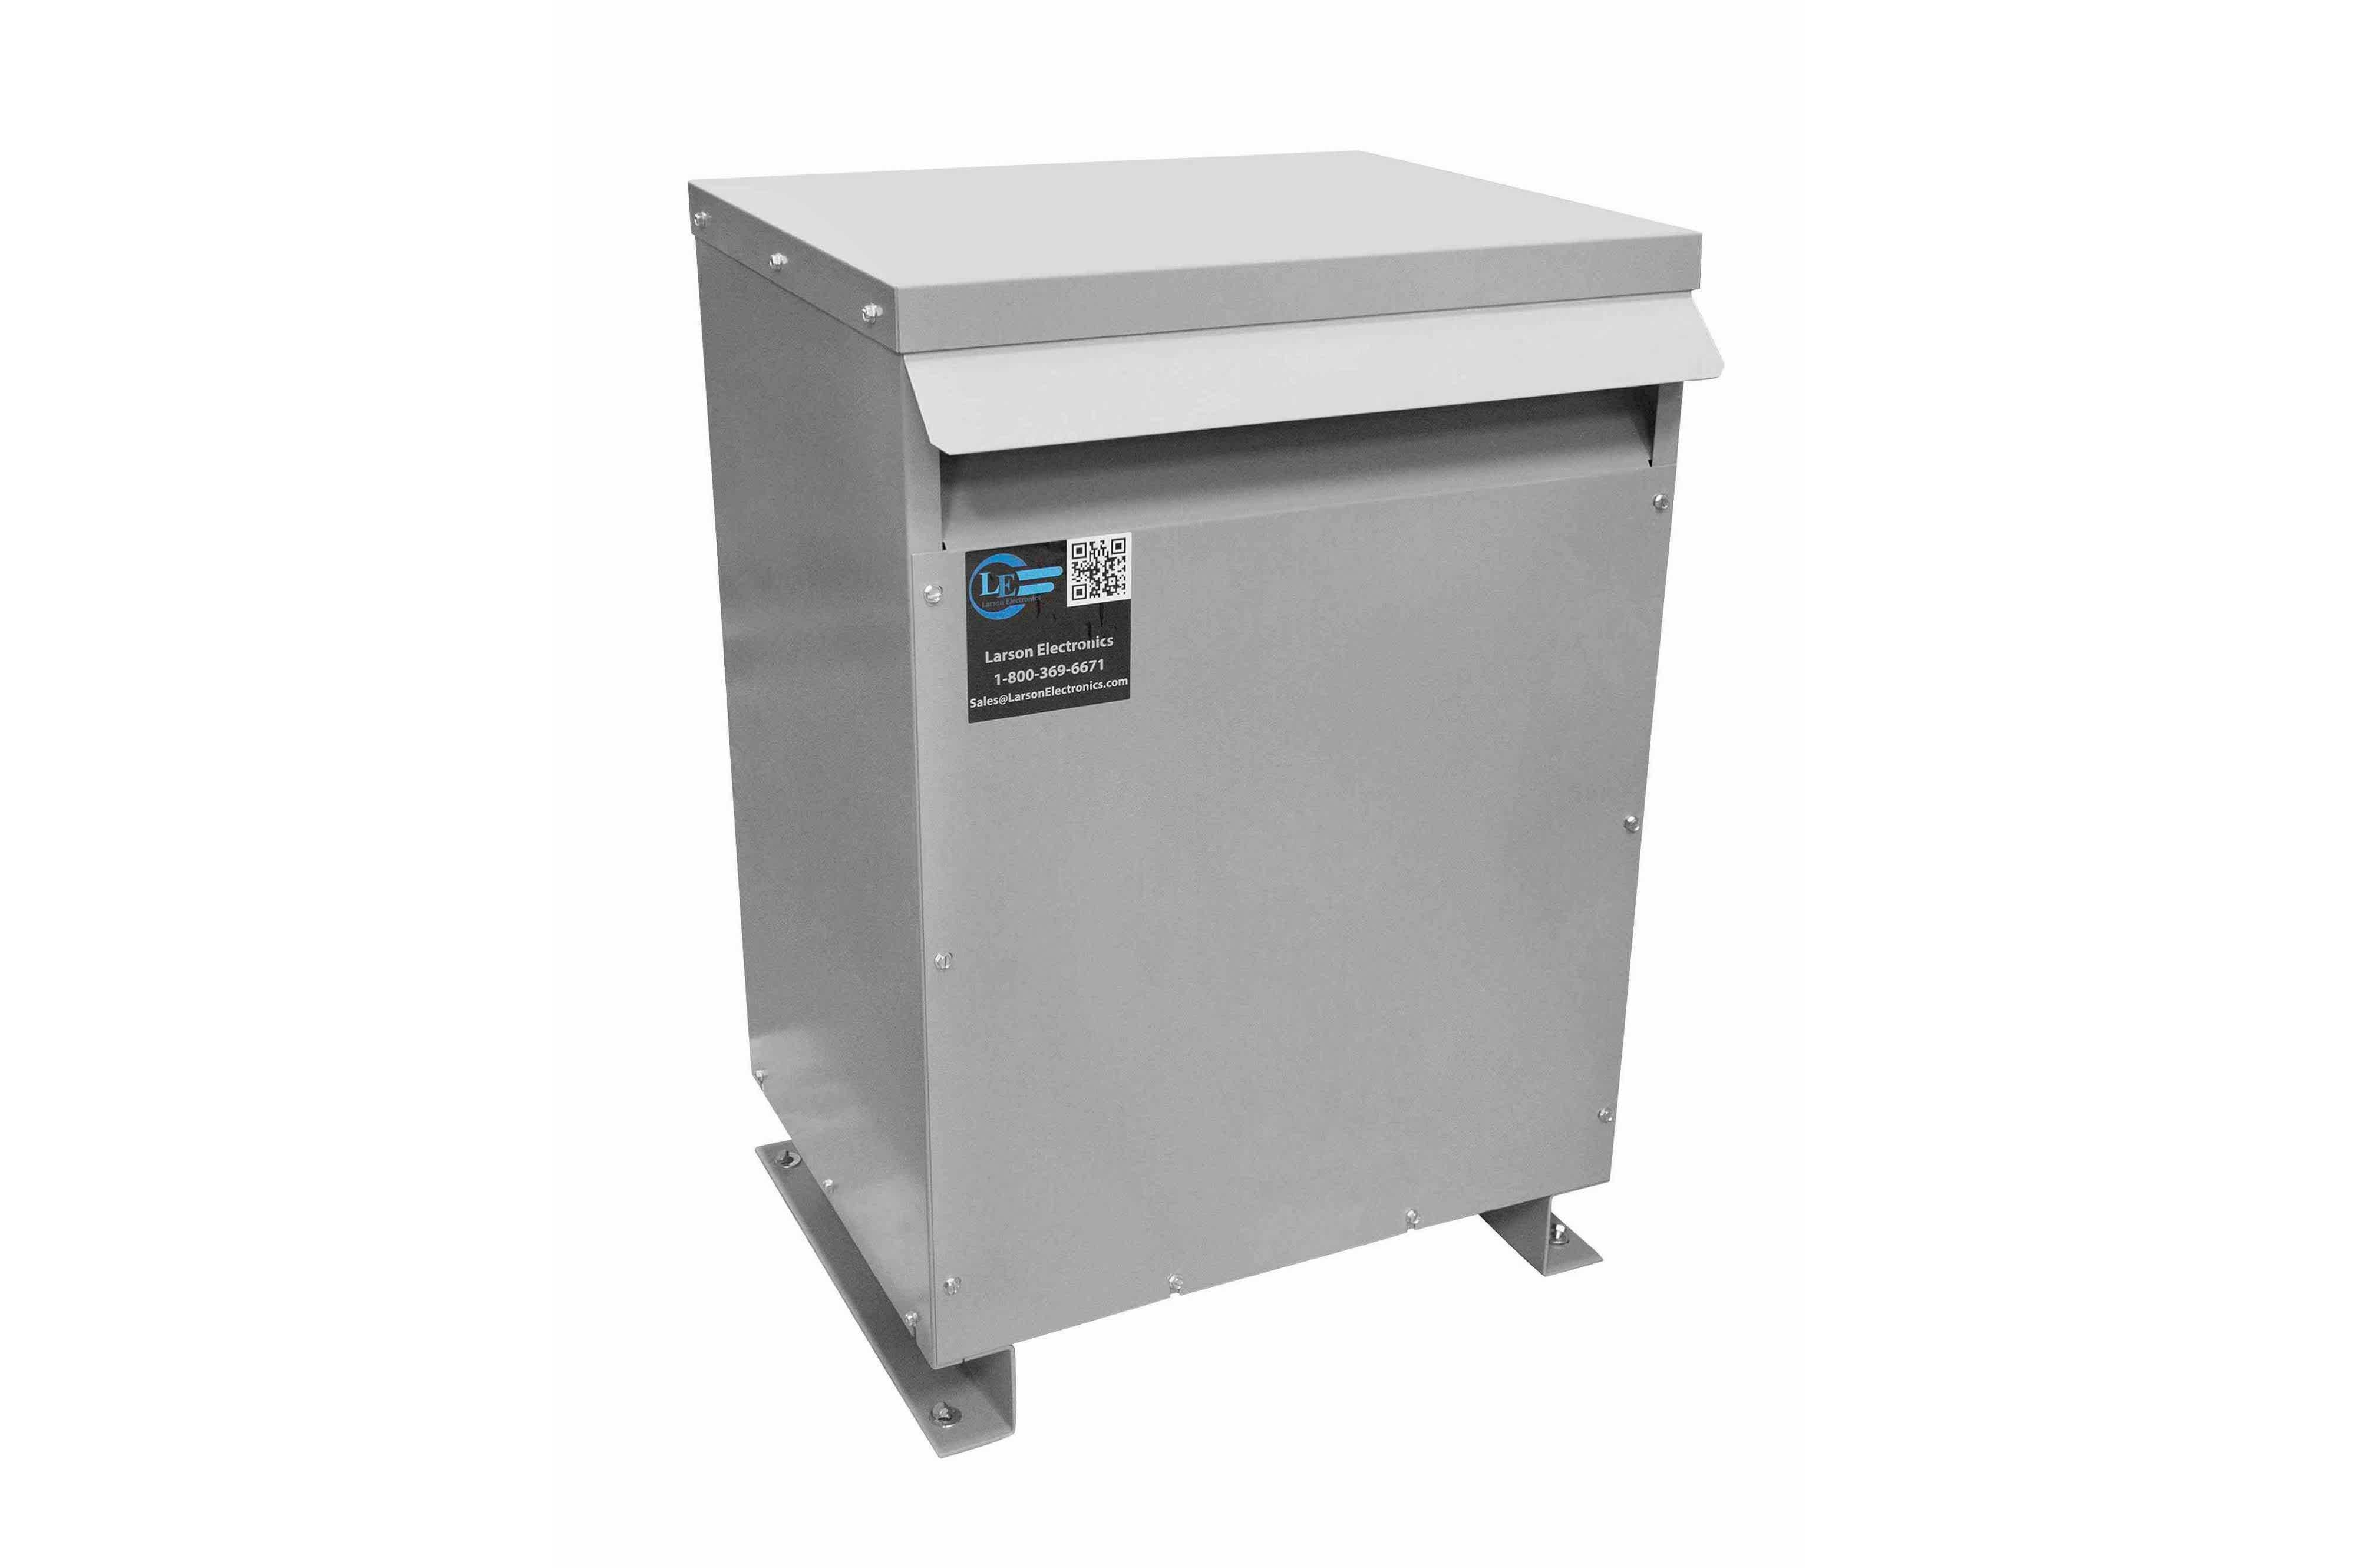 37.5 kVA 3PH Isolation Transformer, 415V Wye Primary, 480Y/277 Wye-N Secondary, N3R, Ventilated, 60 Hz